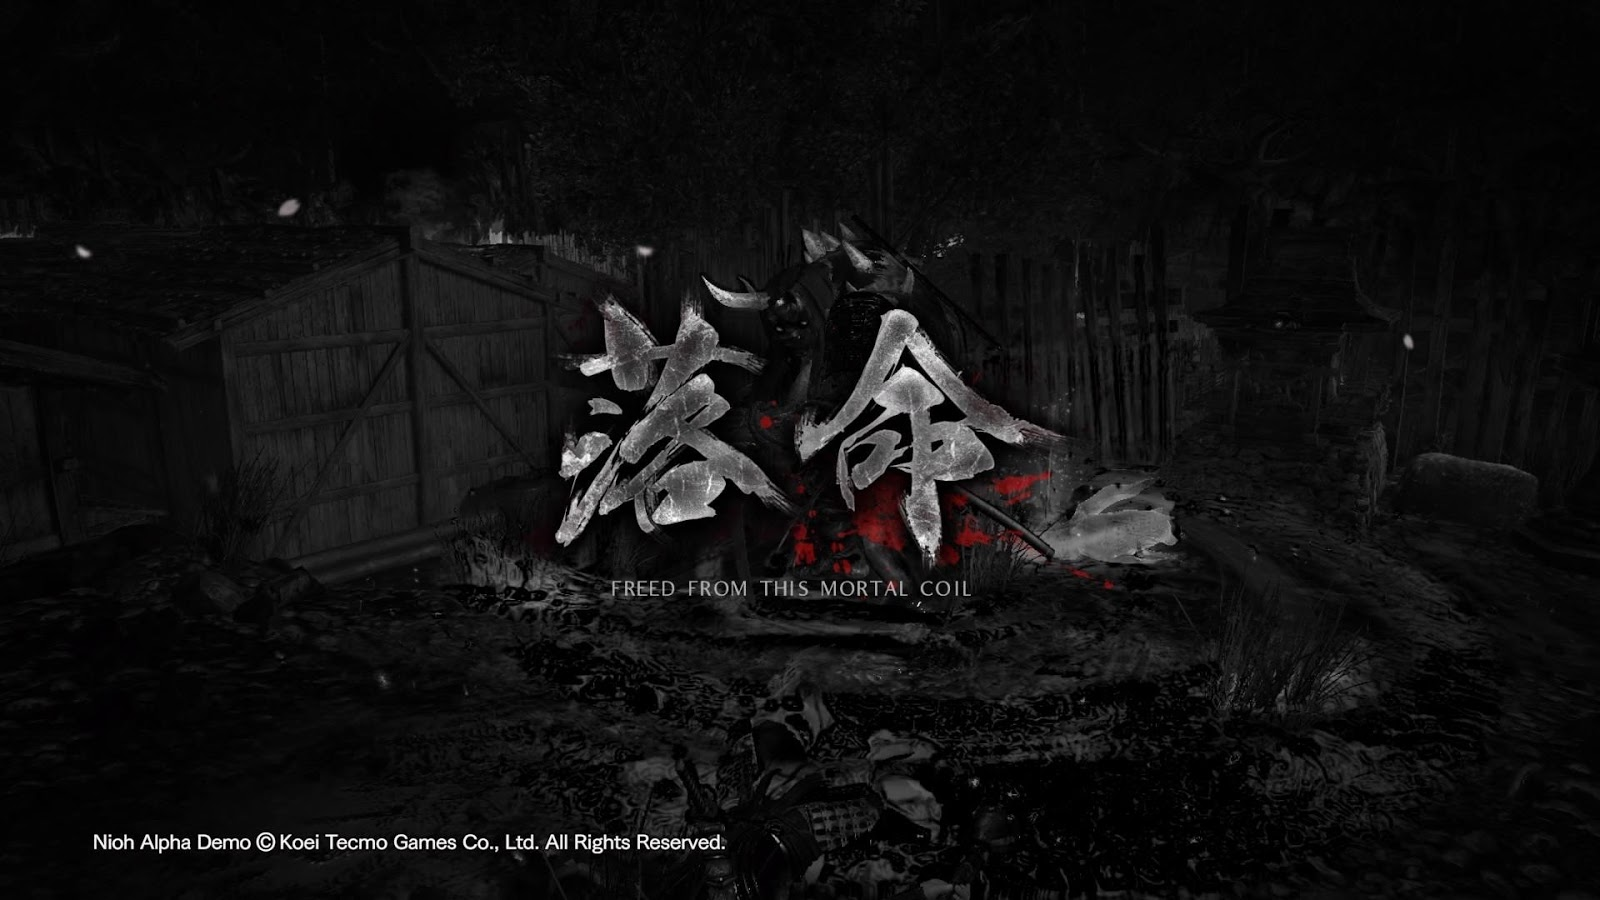 Nioh Ps4 Preview Chalgyrs Game Room Poster Region 3 English Gameplay Spices Things Up With Several Weapons Adding Various Styles Before Even Considering That There Are Three Different Stances Can Be